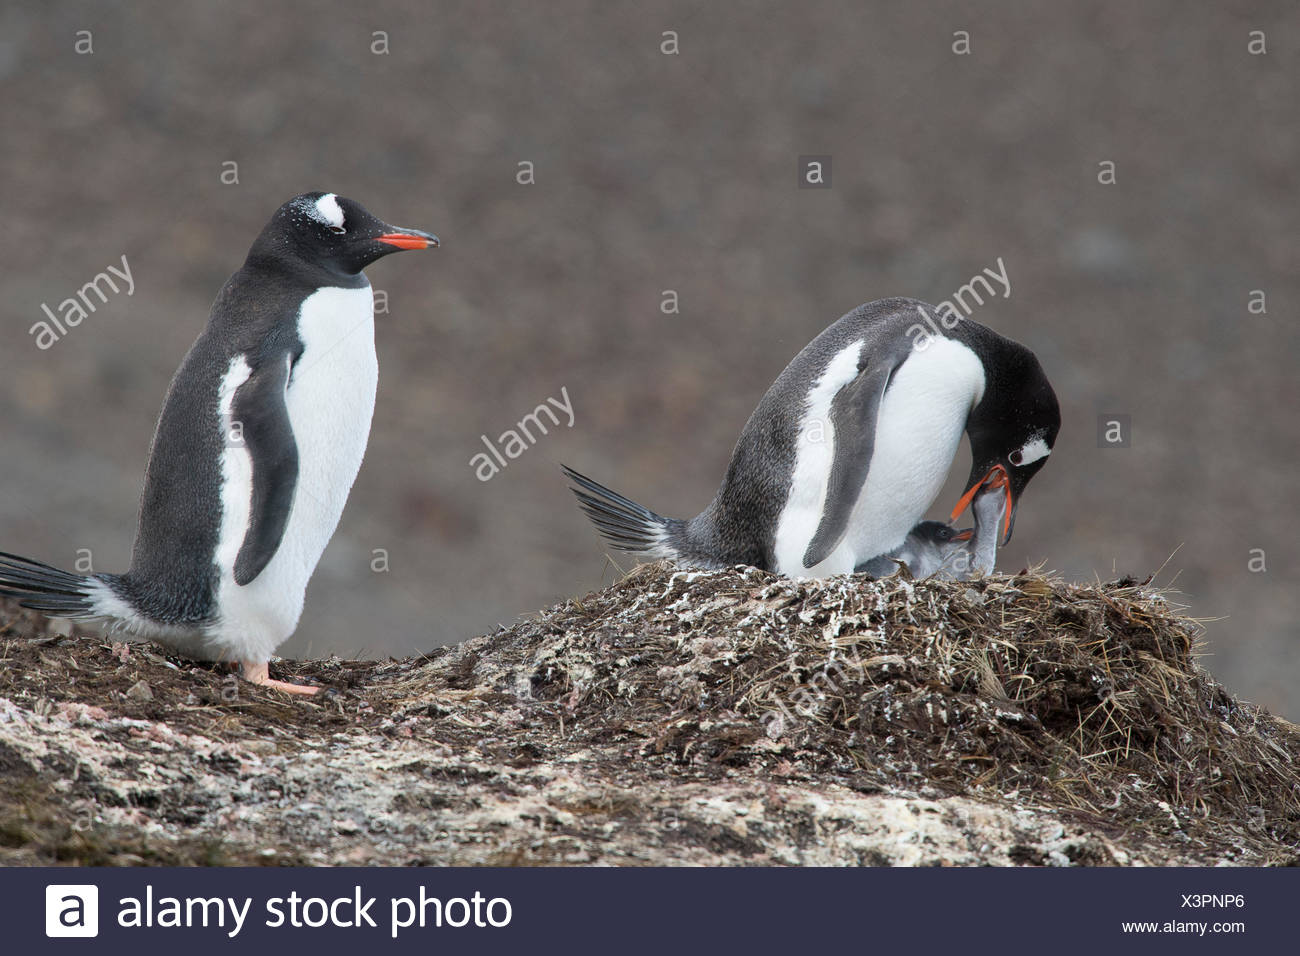 Gentoo penguins, Pygoscelis papua, rear their penguin chicks at a colony. Stock Photo